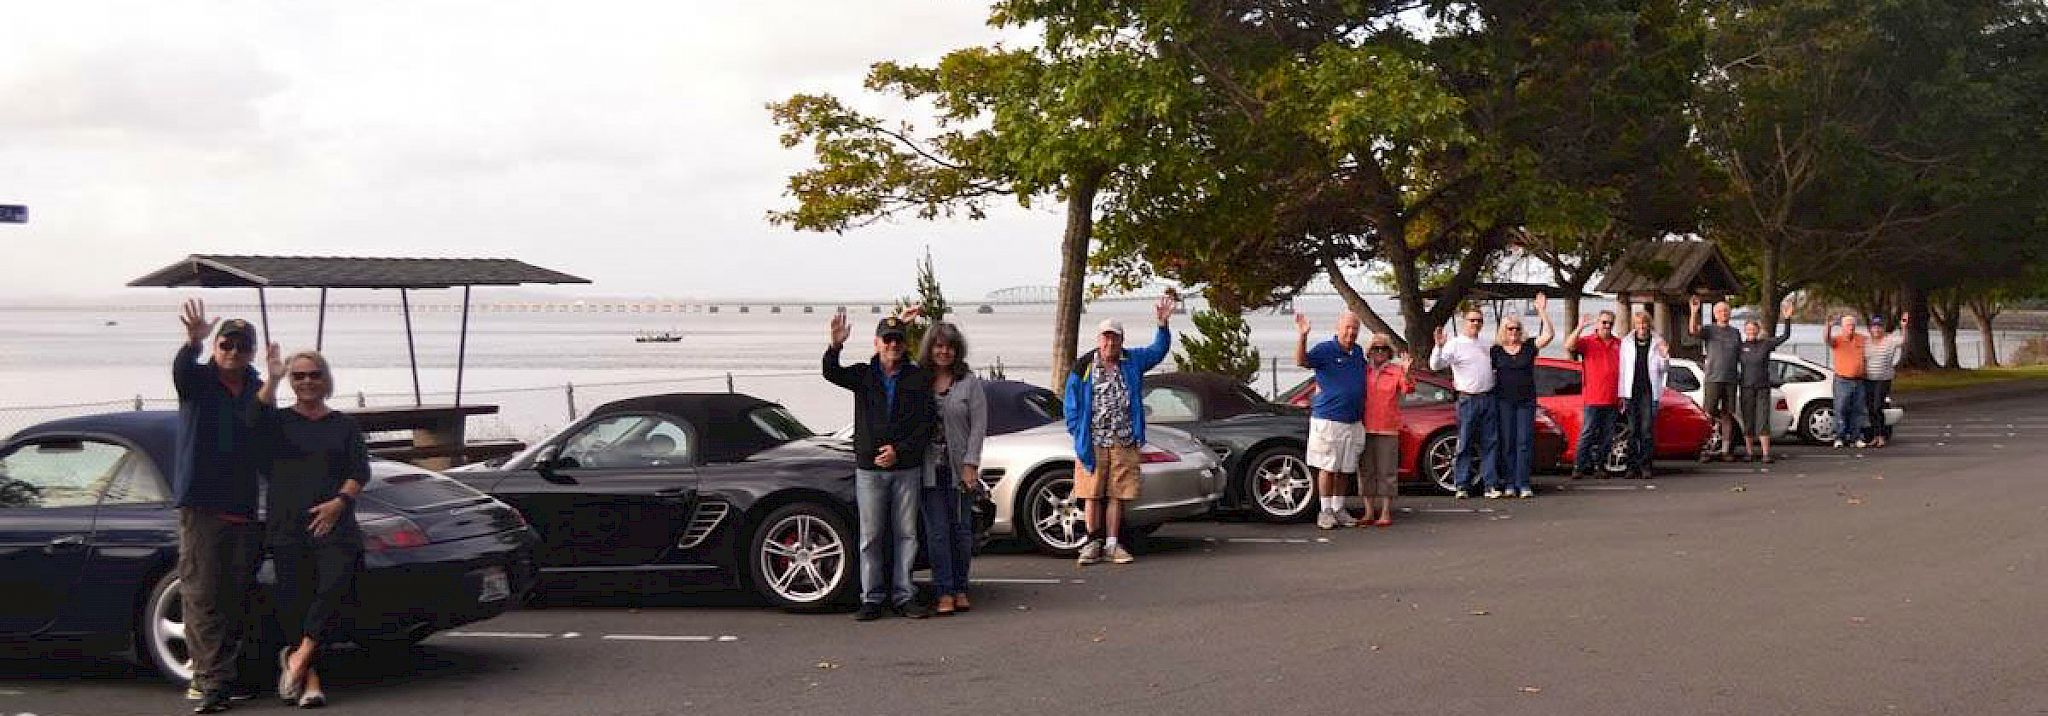 Porsche Club of America Shasta Region